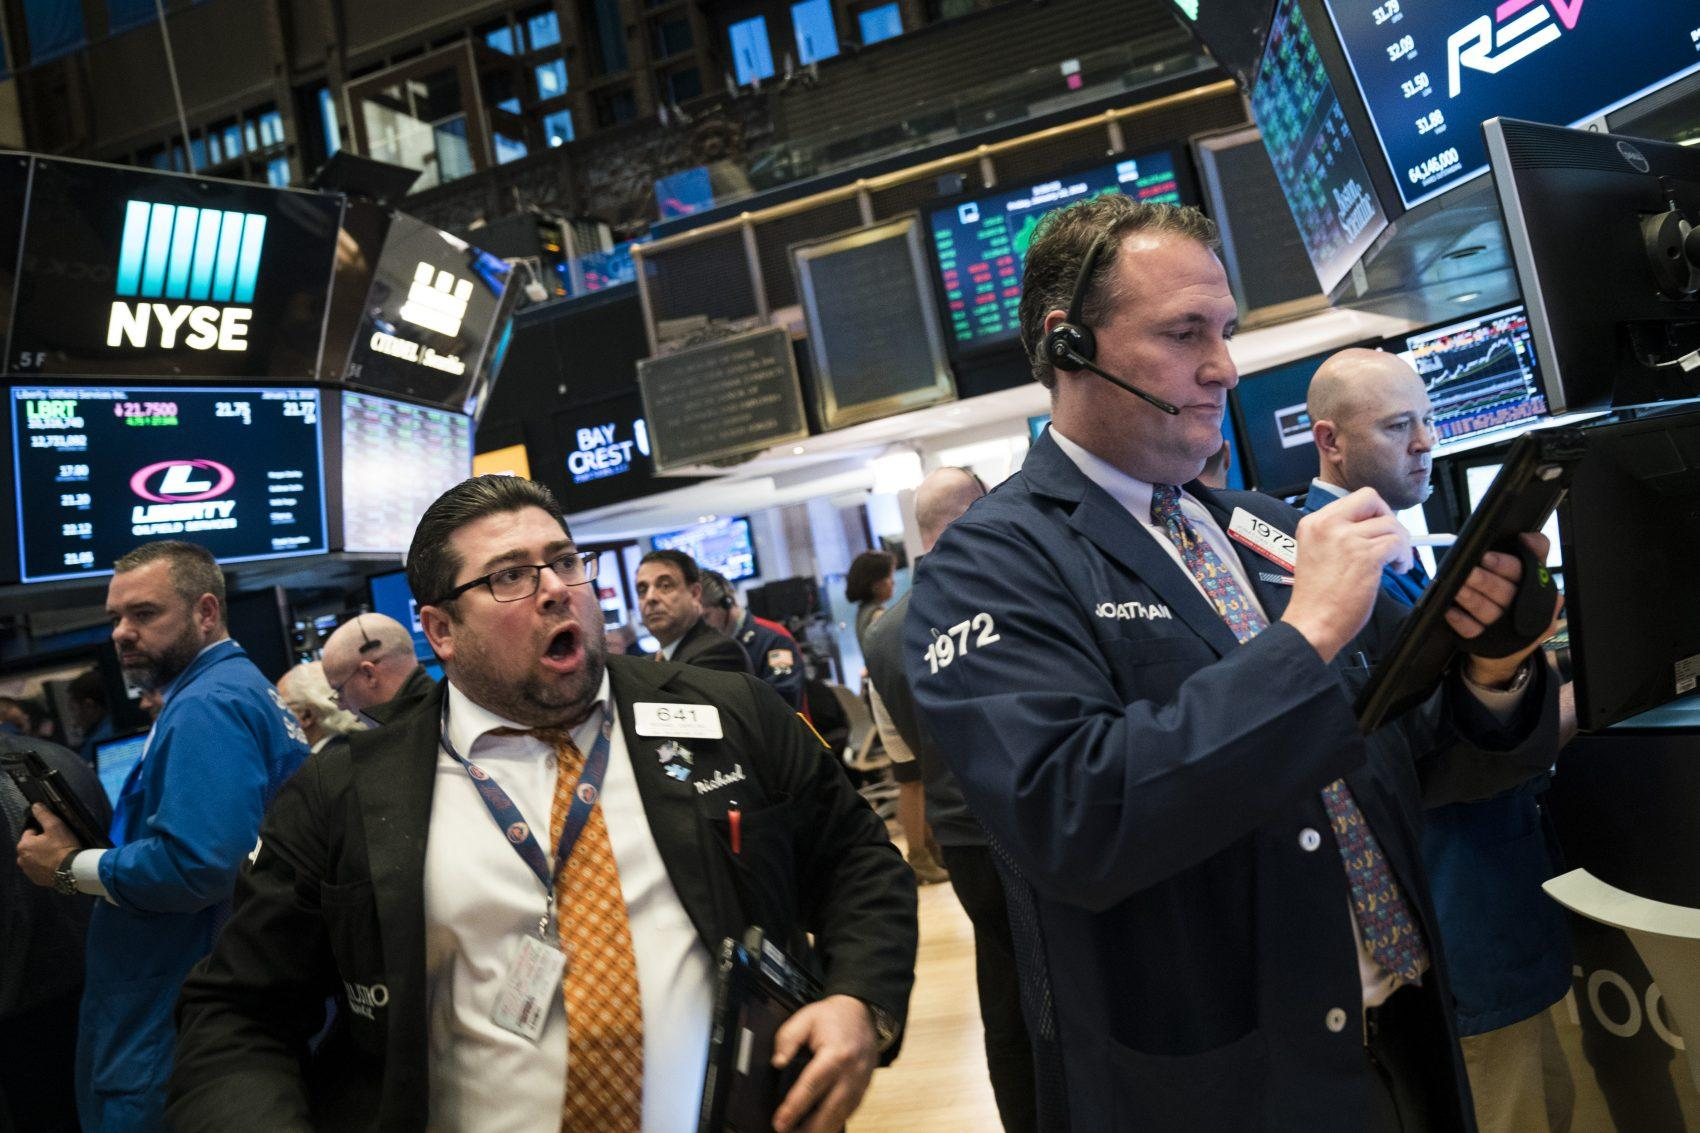 Dow closes above 26000 for the first time